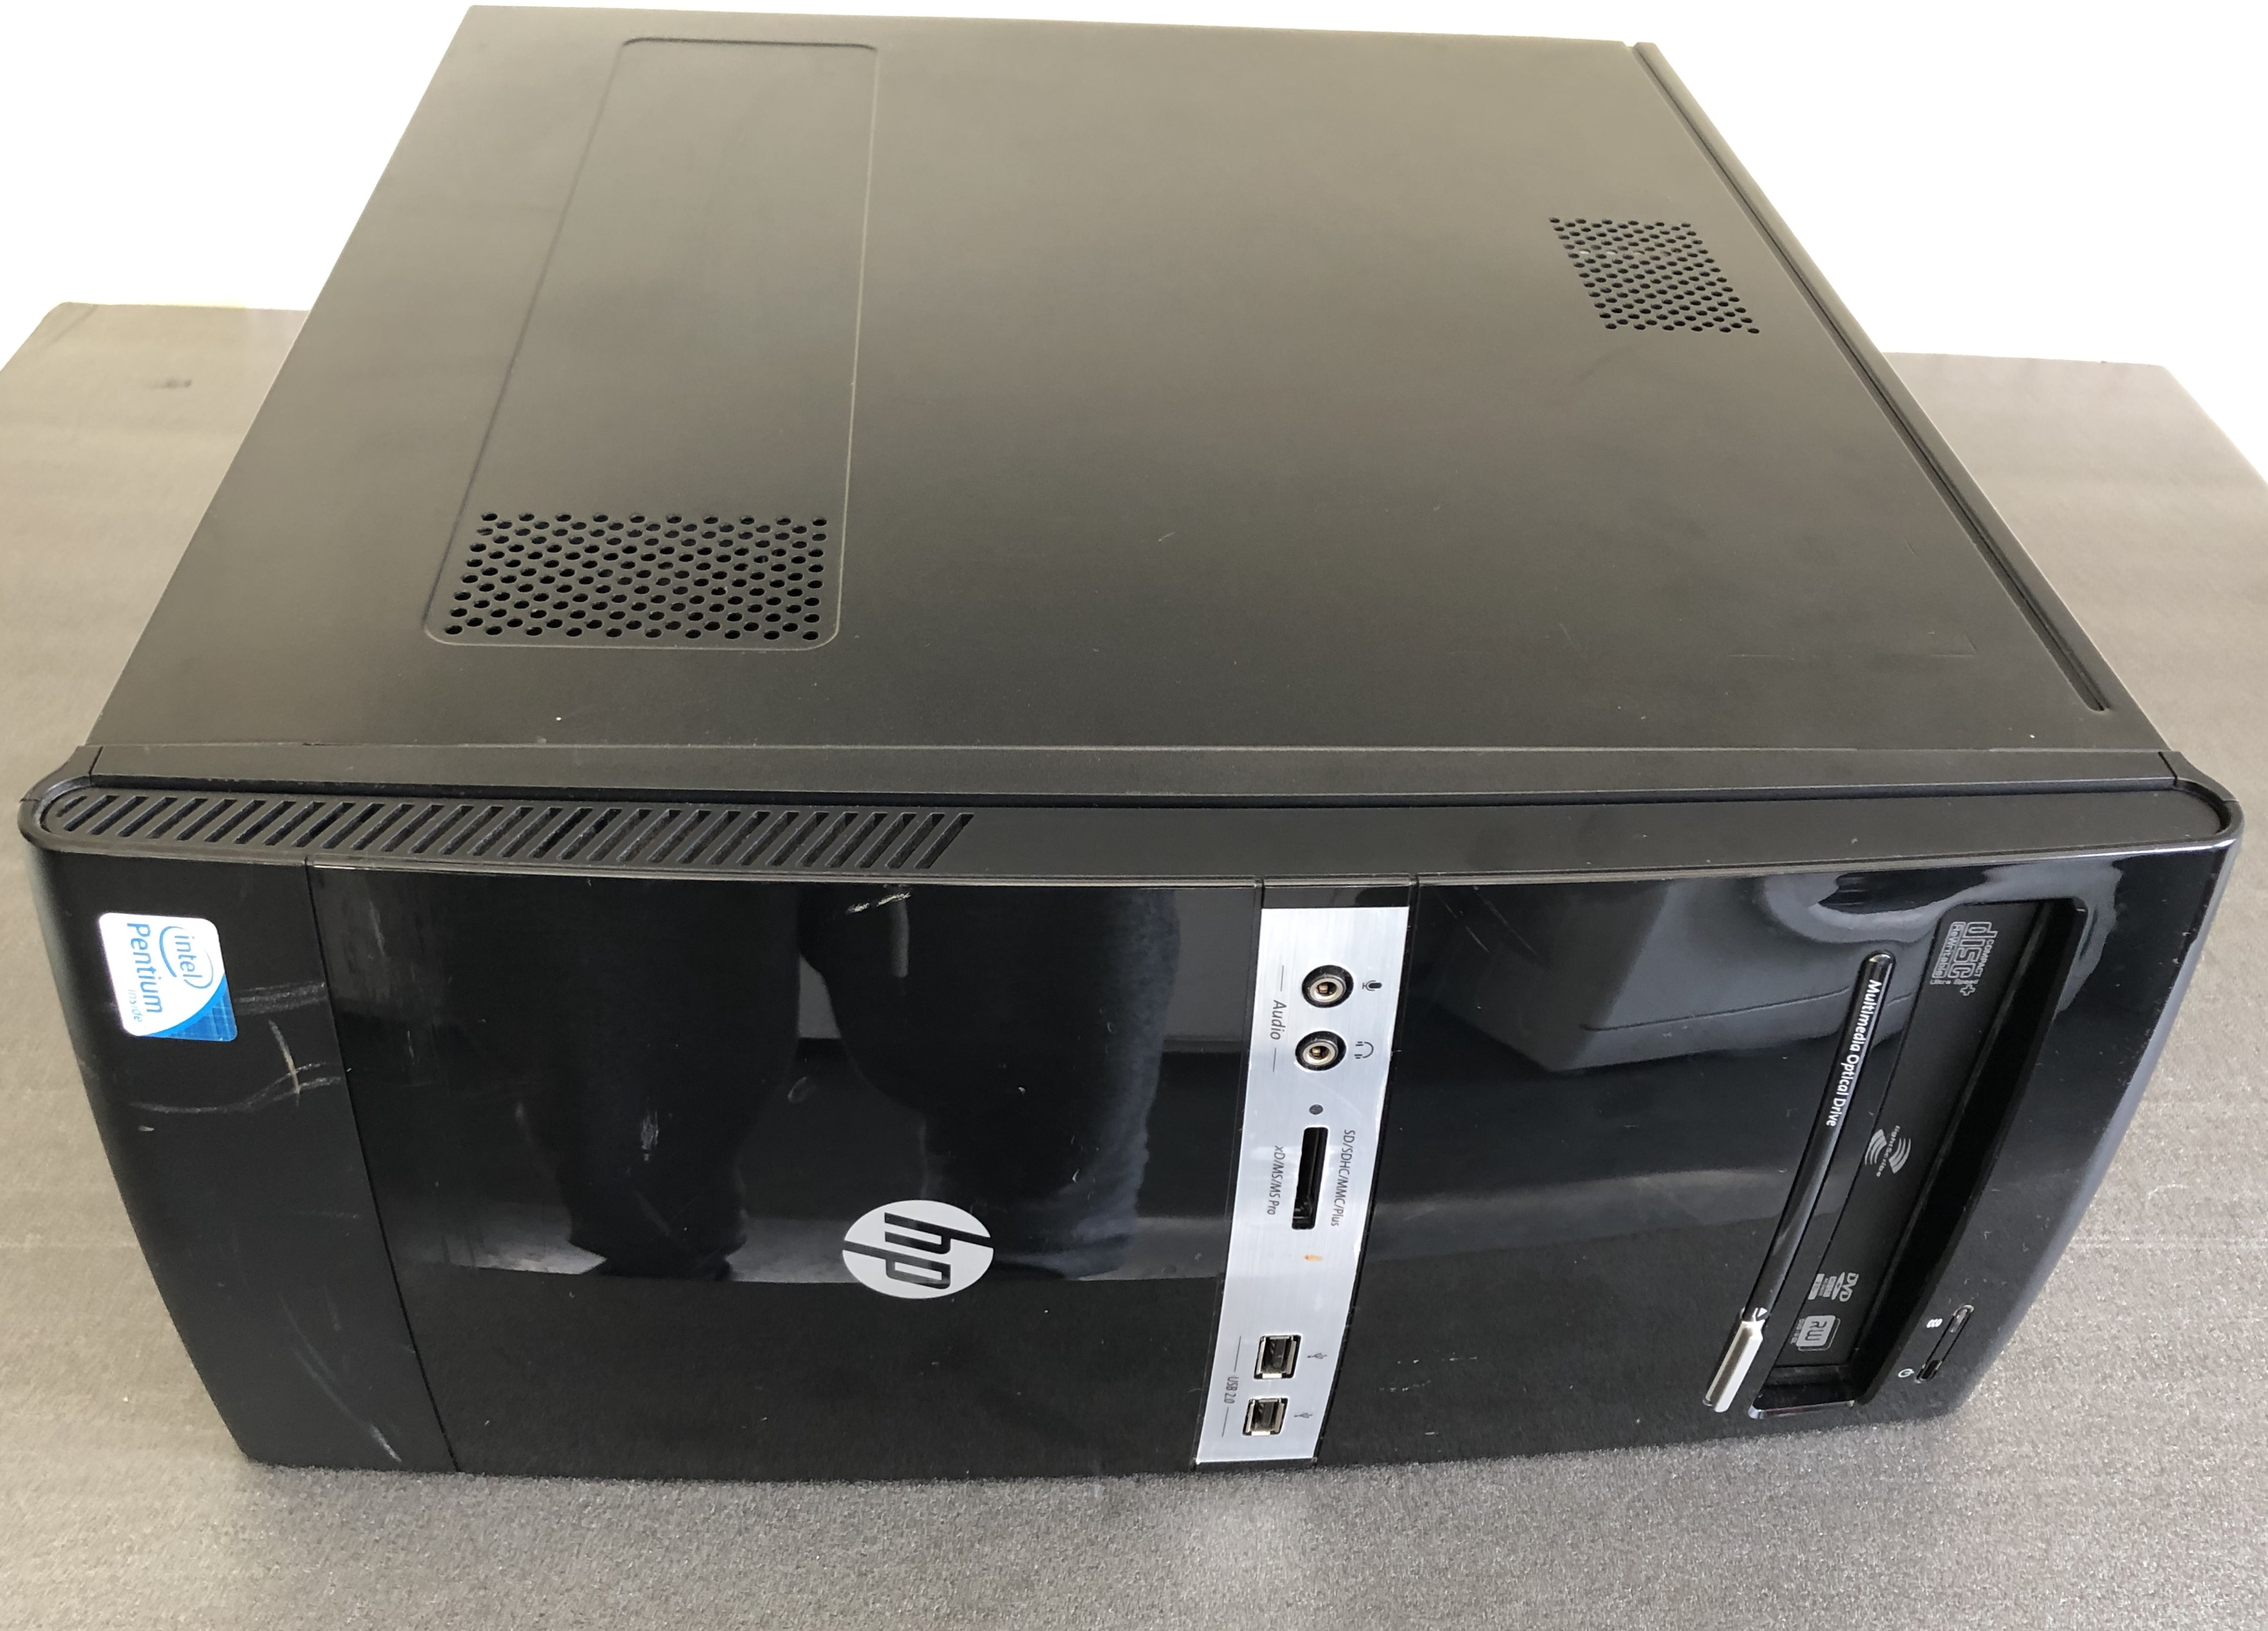 Refurbished HP 500B MT PC Dual-Core E5500 Dual-Core @2.8Ghz 4GB Ram 320GB HD Windows10